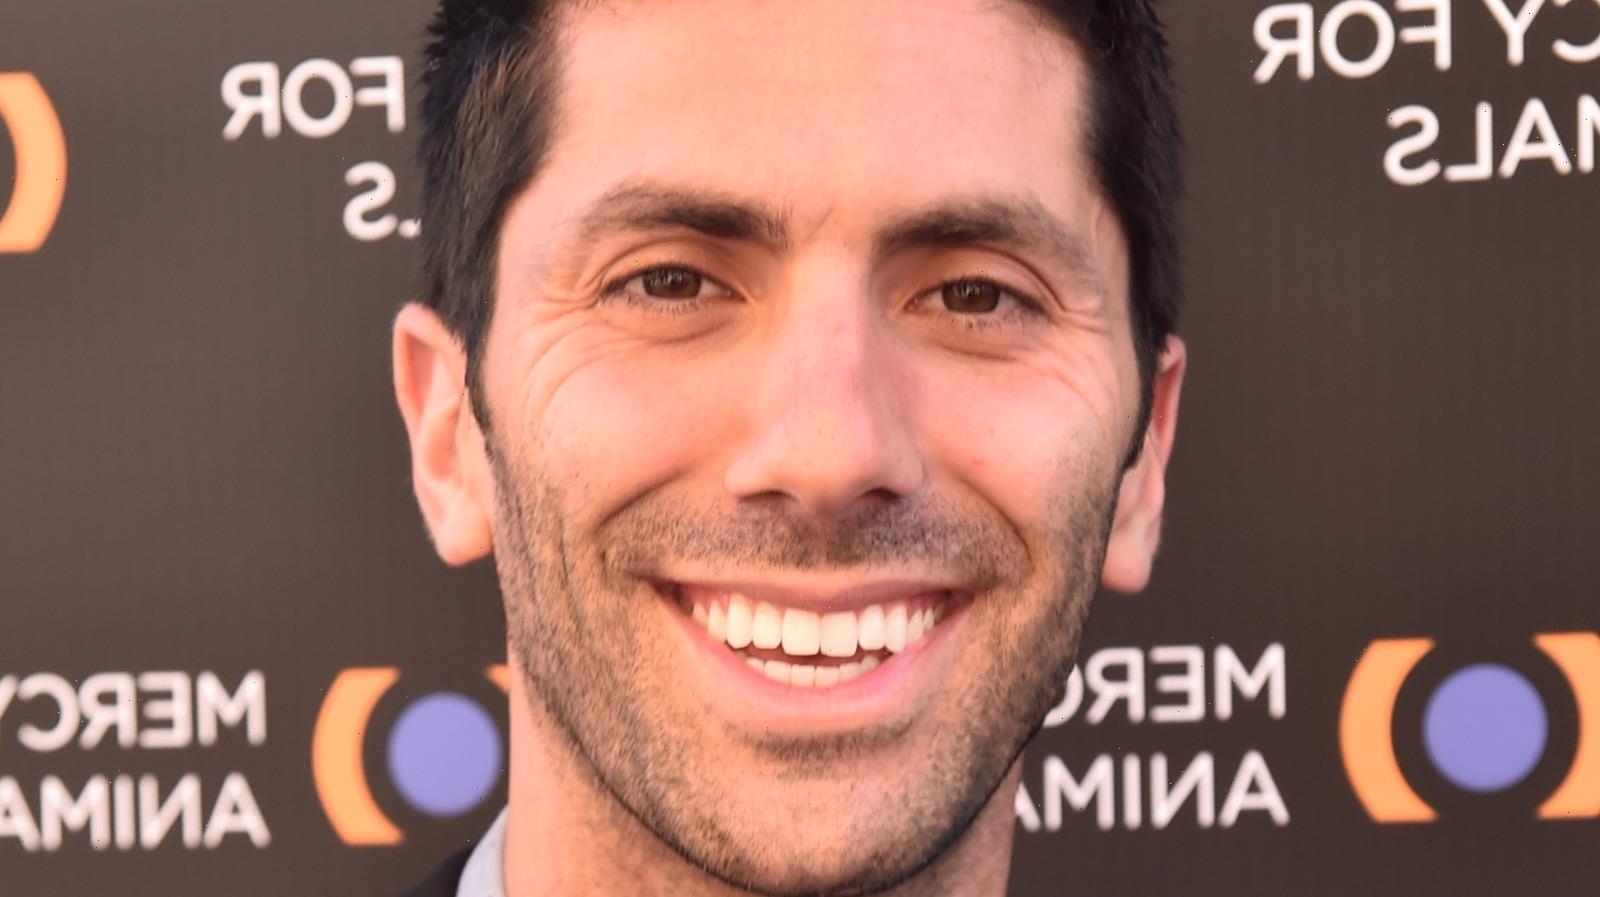 Catfish Season 9: Release Date, Cast And New Details